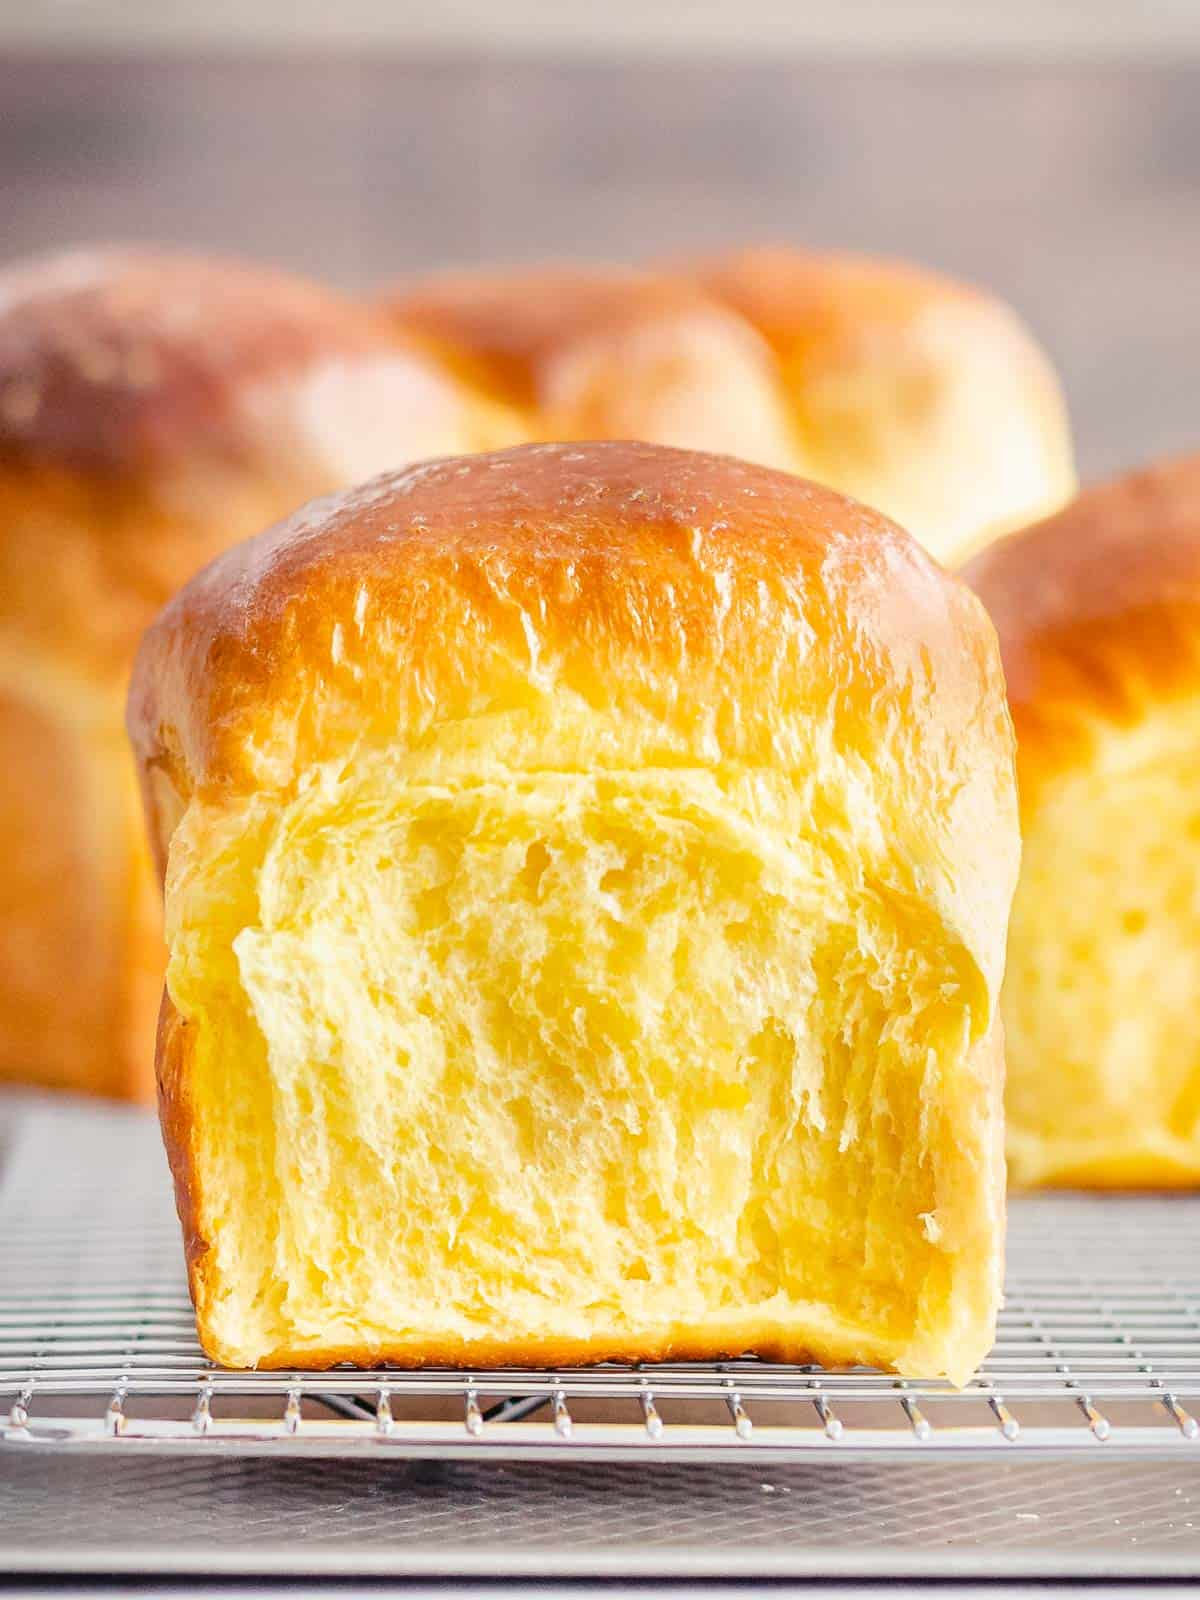 Soft and fluffy pull apart sourdough rolls made with mashed pumpkin with a golden brown crust and yellow crumb.